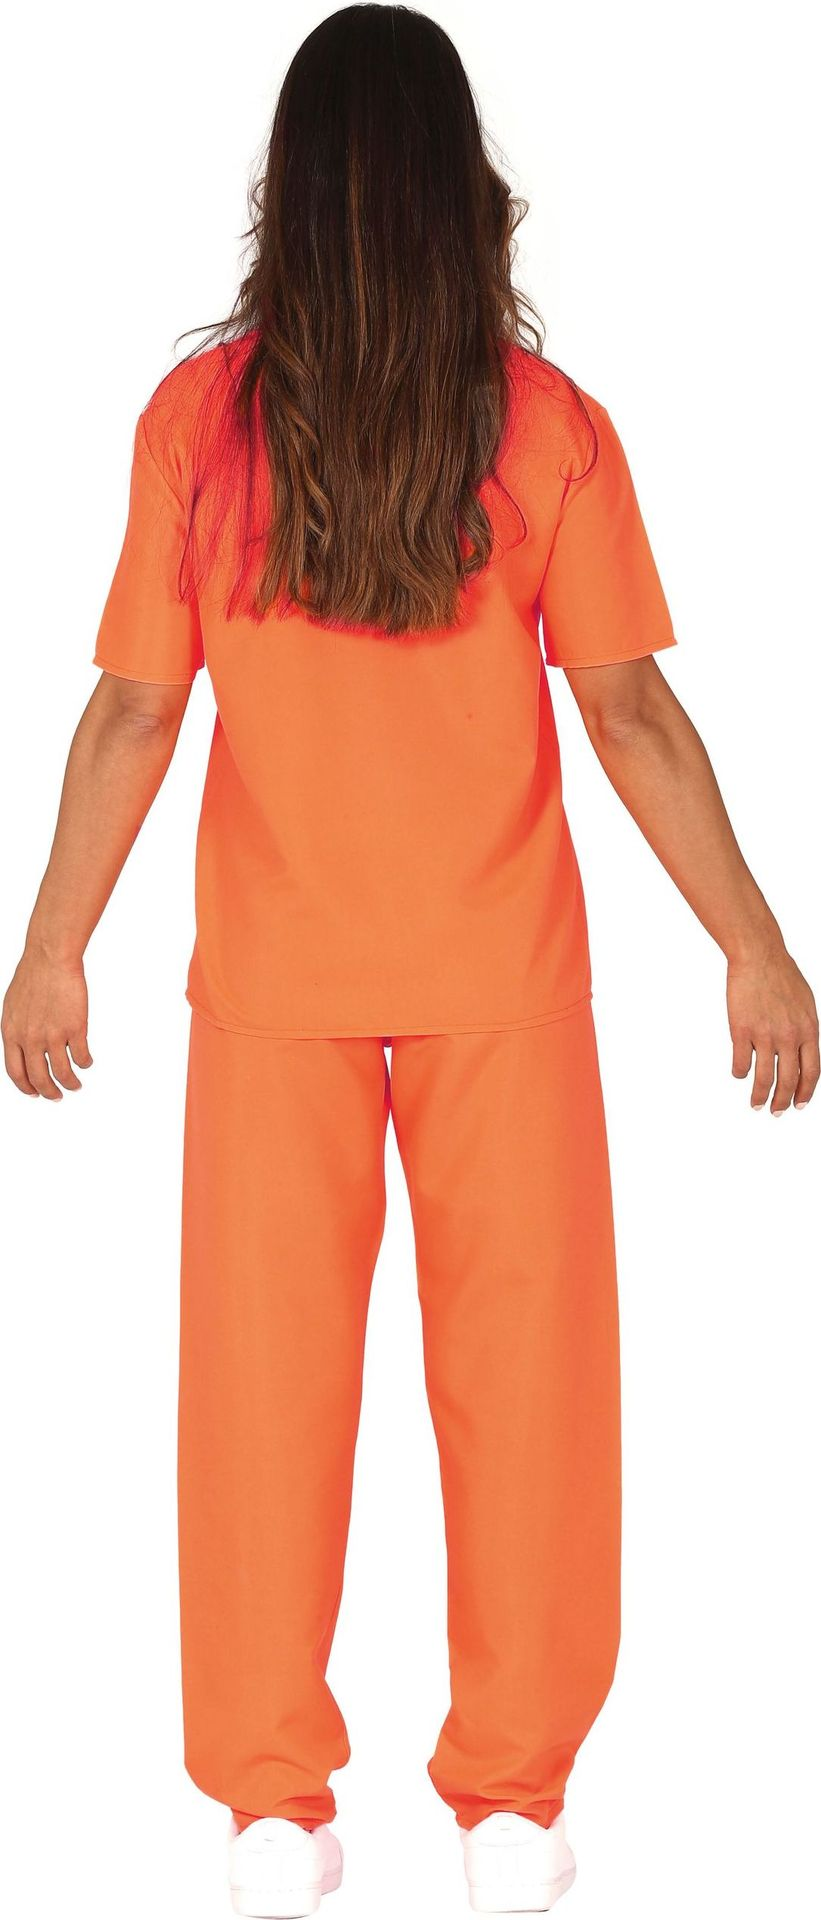 Orange is the new black overall